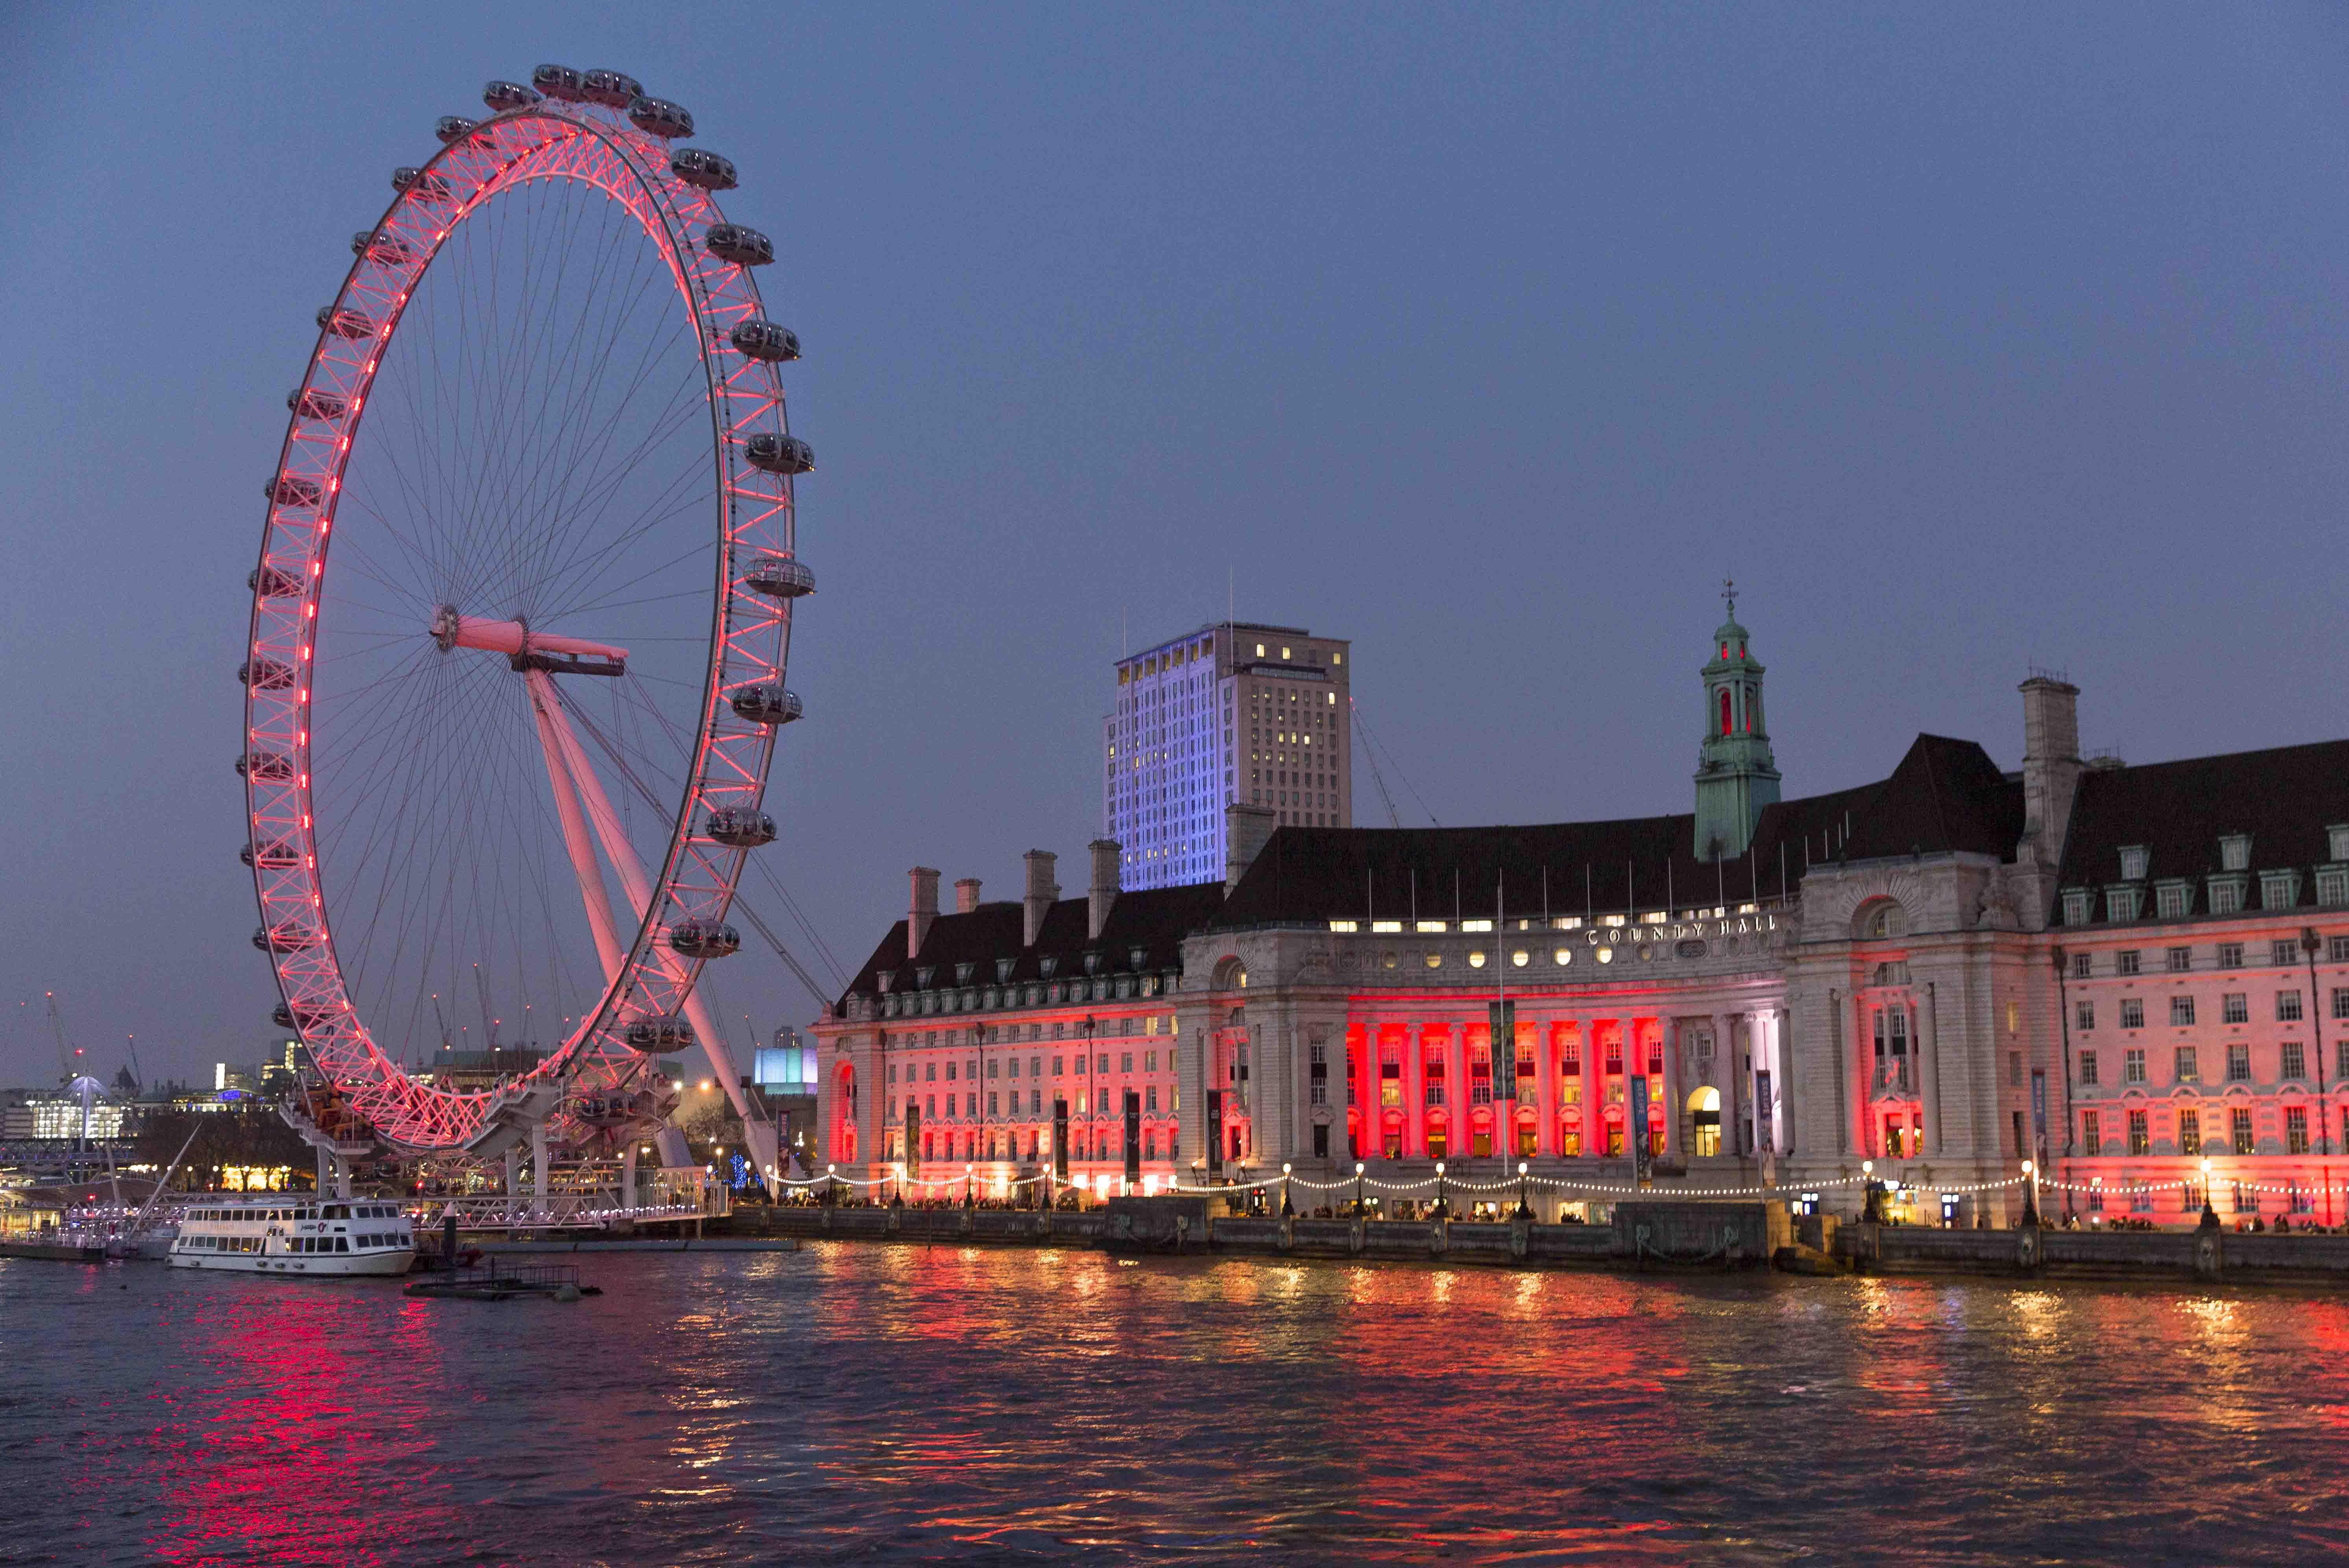 View of the London Eye and city skyline at night.